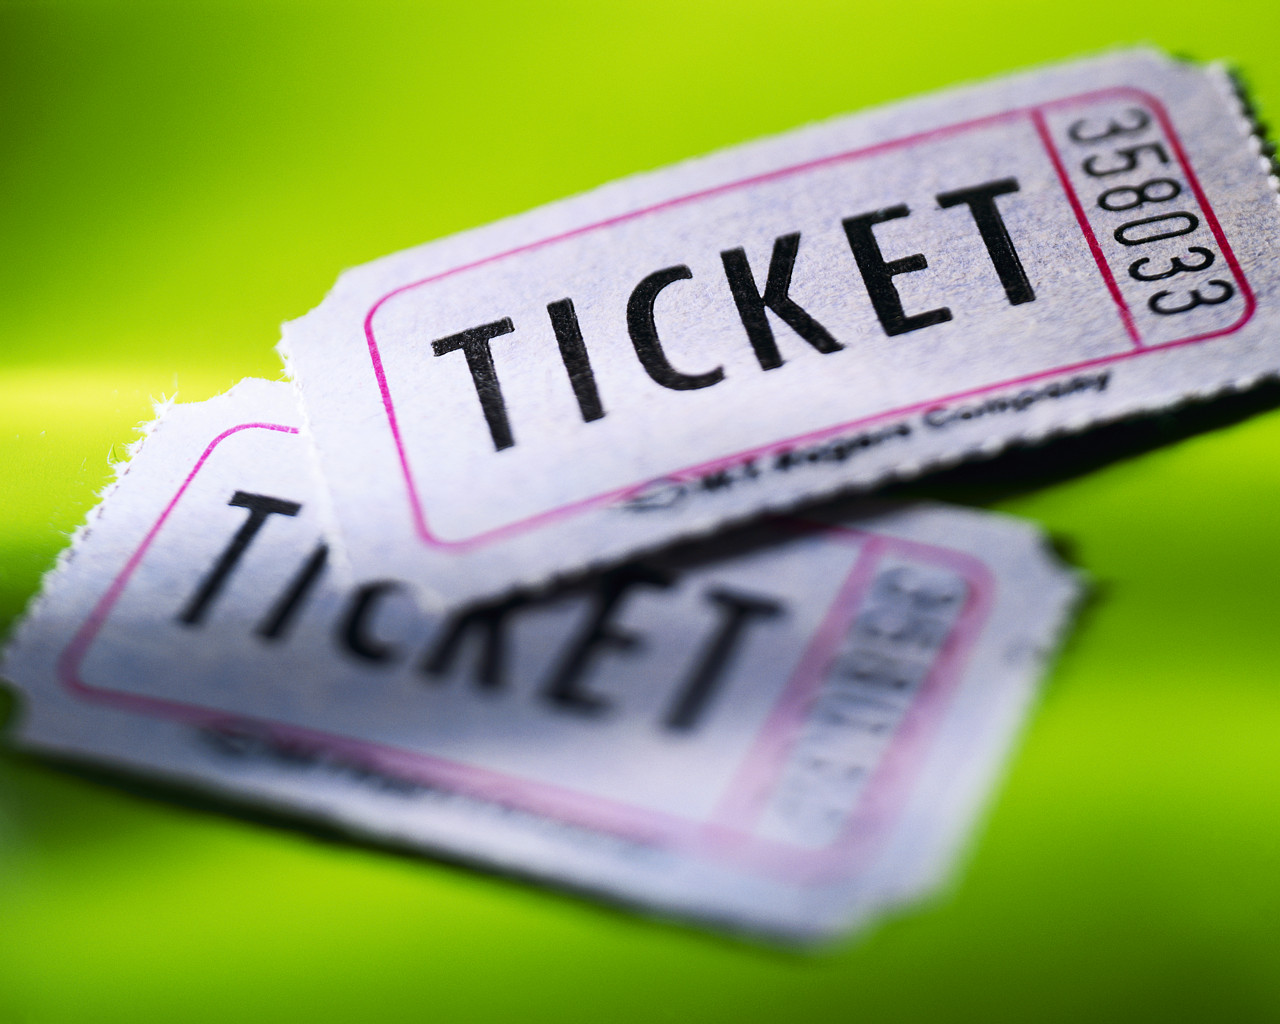 Tickets_original